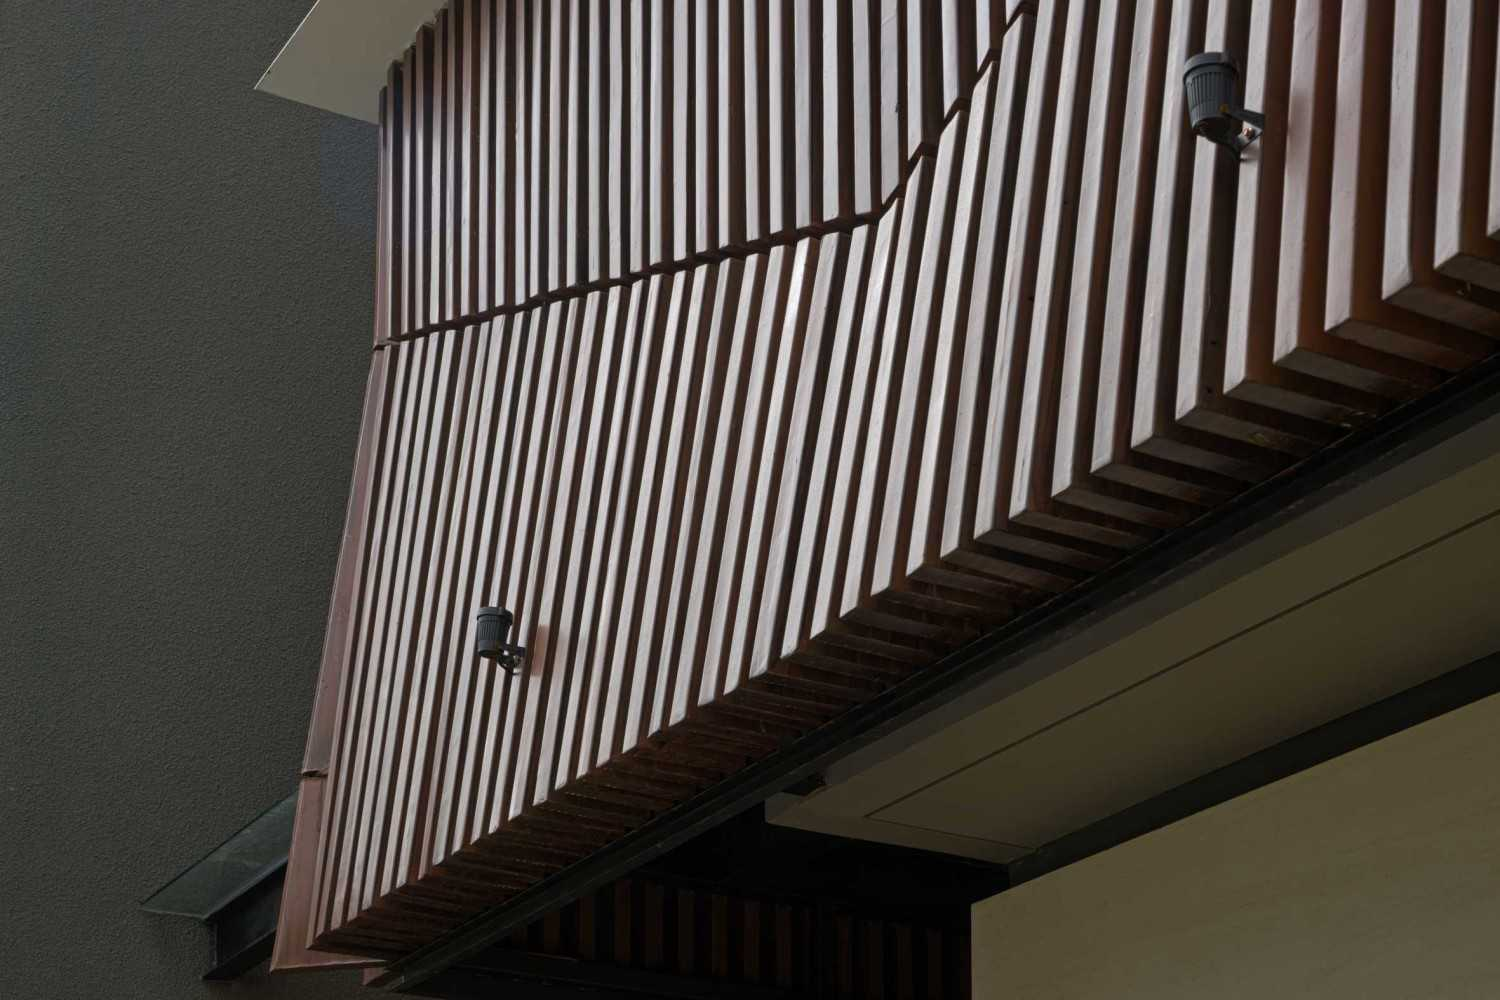 """Simple Projects Architecture """"s"""" House Pakuwon Indah, Surabaya - Indonesia Pakuwon Indah, Surabaya - Indonesia Exterior Details  32970"""